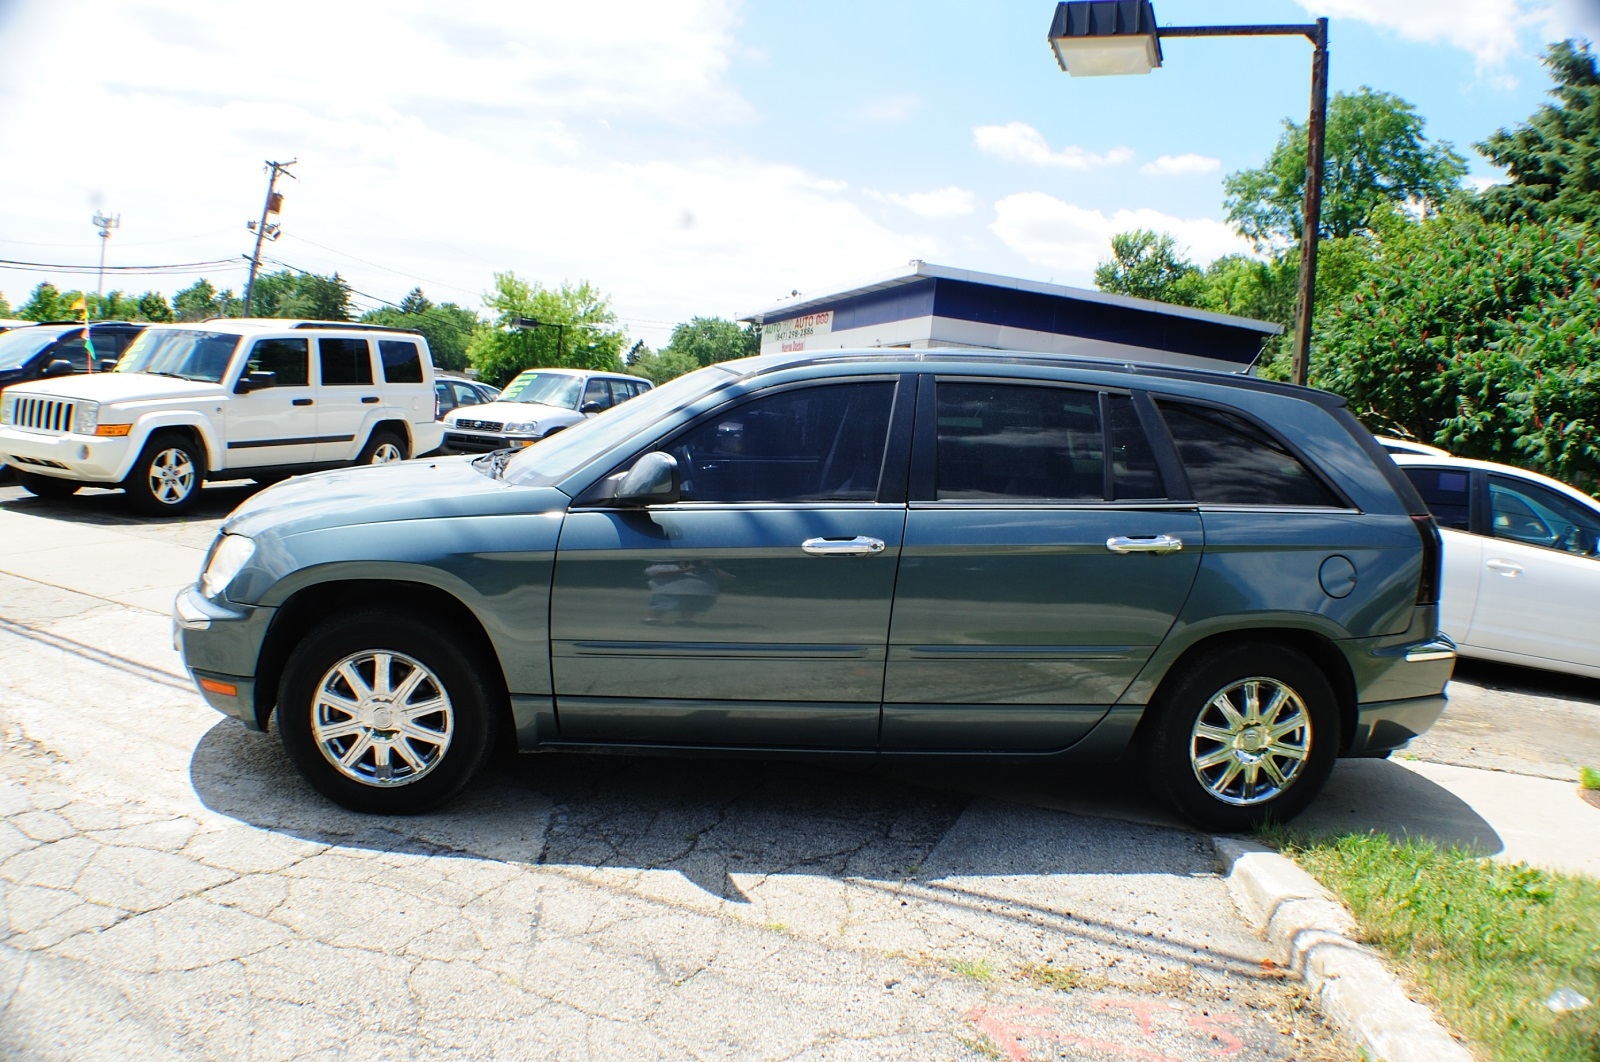 2007 Chrysler Pacifica Magnesium Pearl Used car sale Addison Algonquin Arlington Heights Bartlett